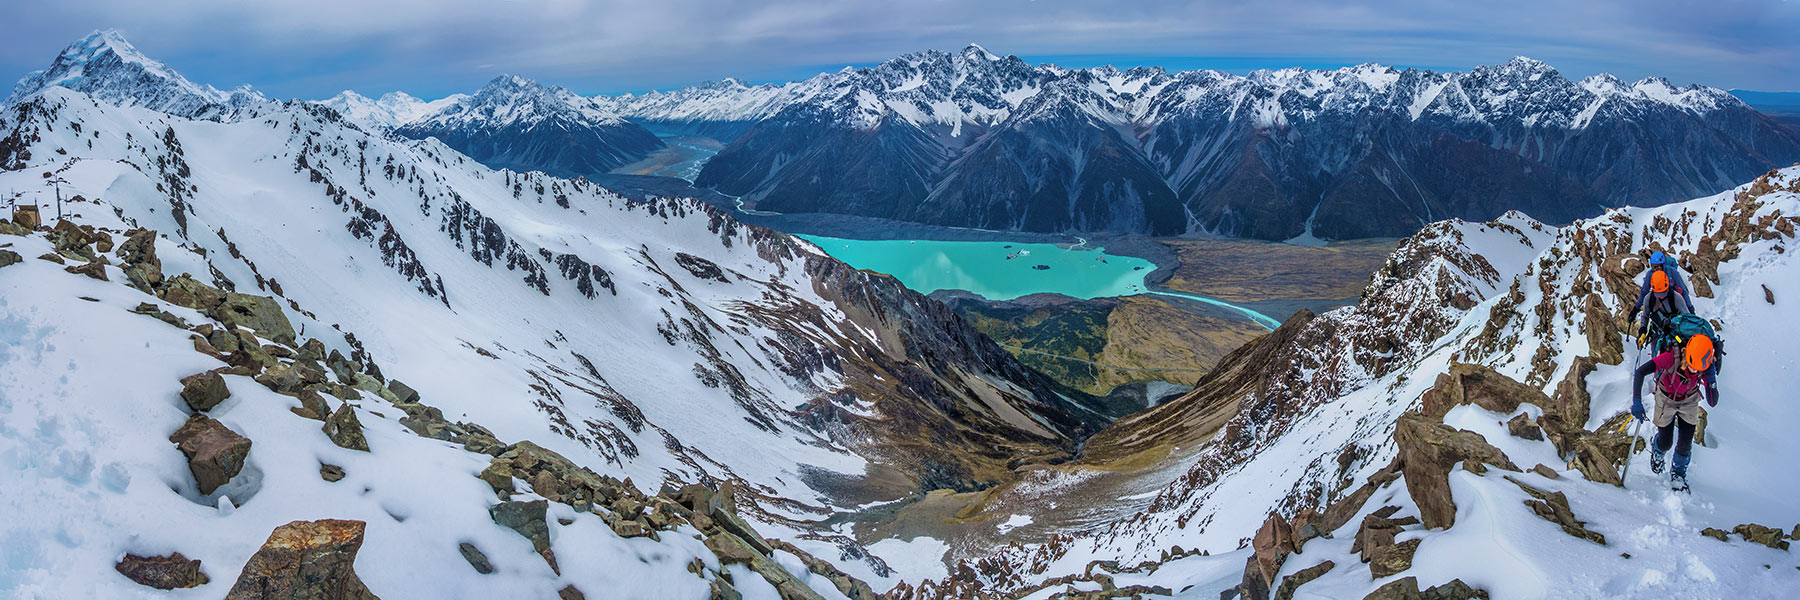 Mt-Cook-Nov2016-0091-pan-6067x2000